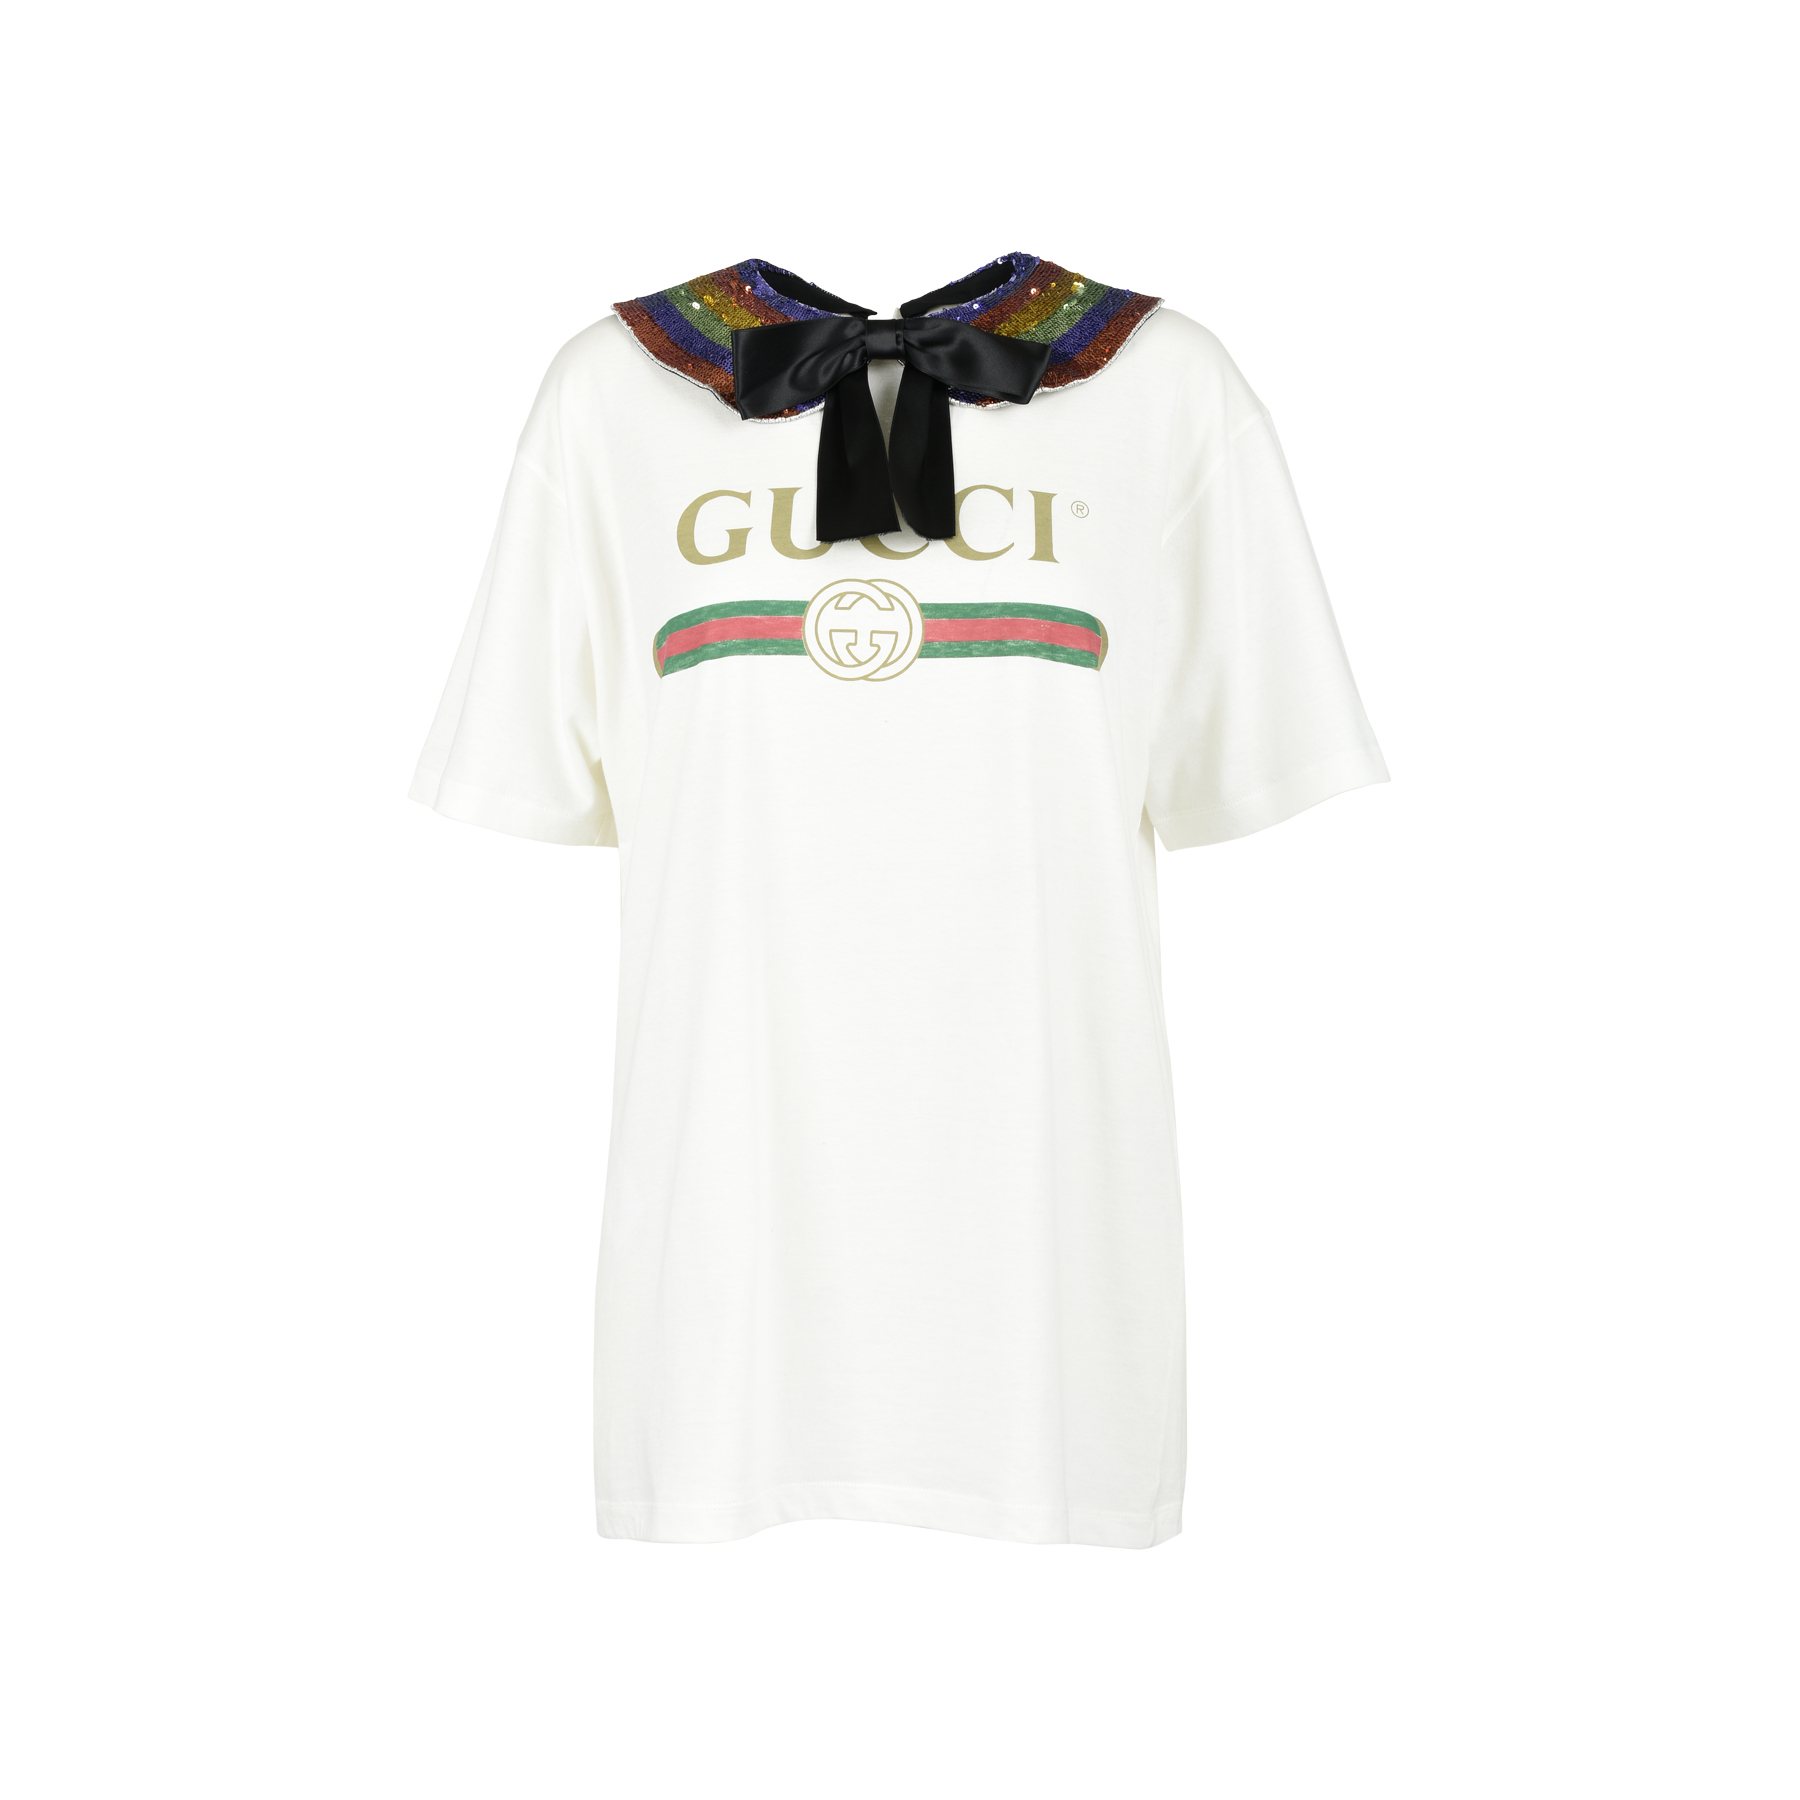 0f820f20 Authentic Second Hand Gucci Rainbow Logo Collar T-Shirt (PSS-051-00356) |  THE FIFTH COLLECTION